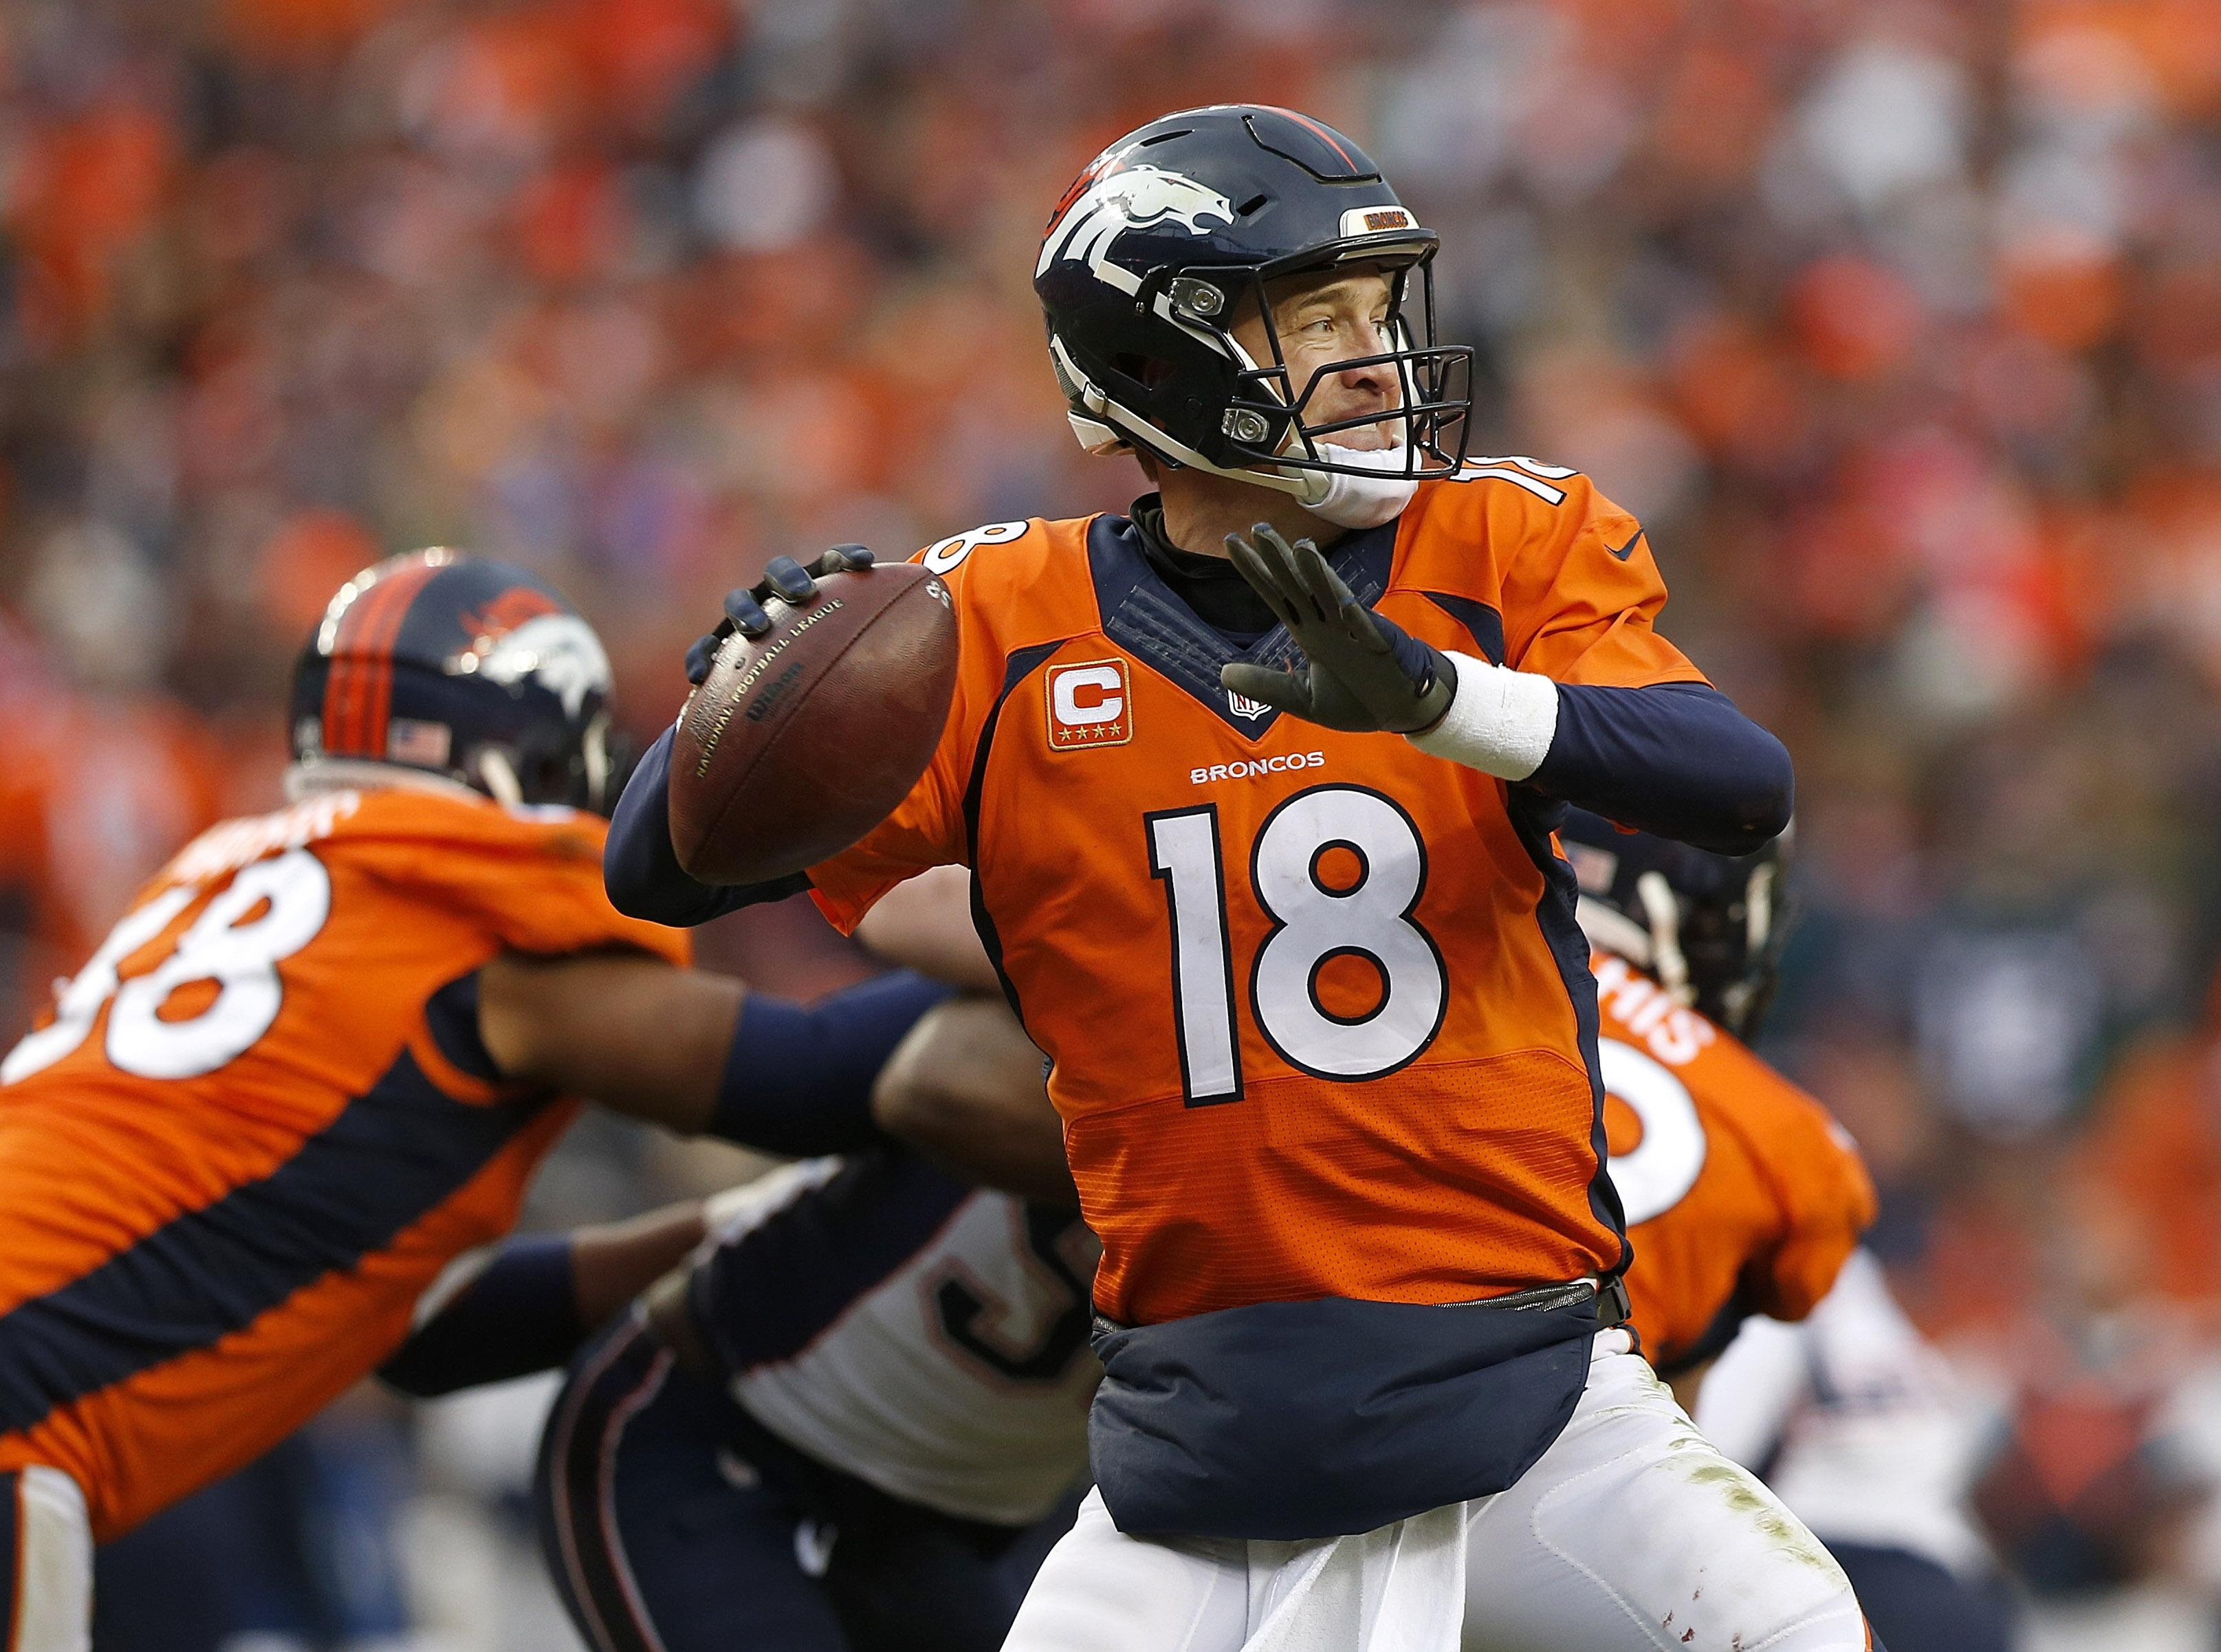 Super Bowl Could Be Peyton Manning's Last Game, Cam Newton's with regard to Peyton Manning Super Bowl